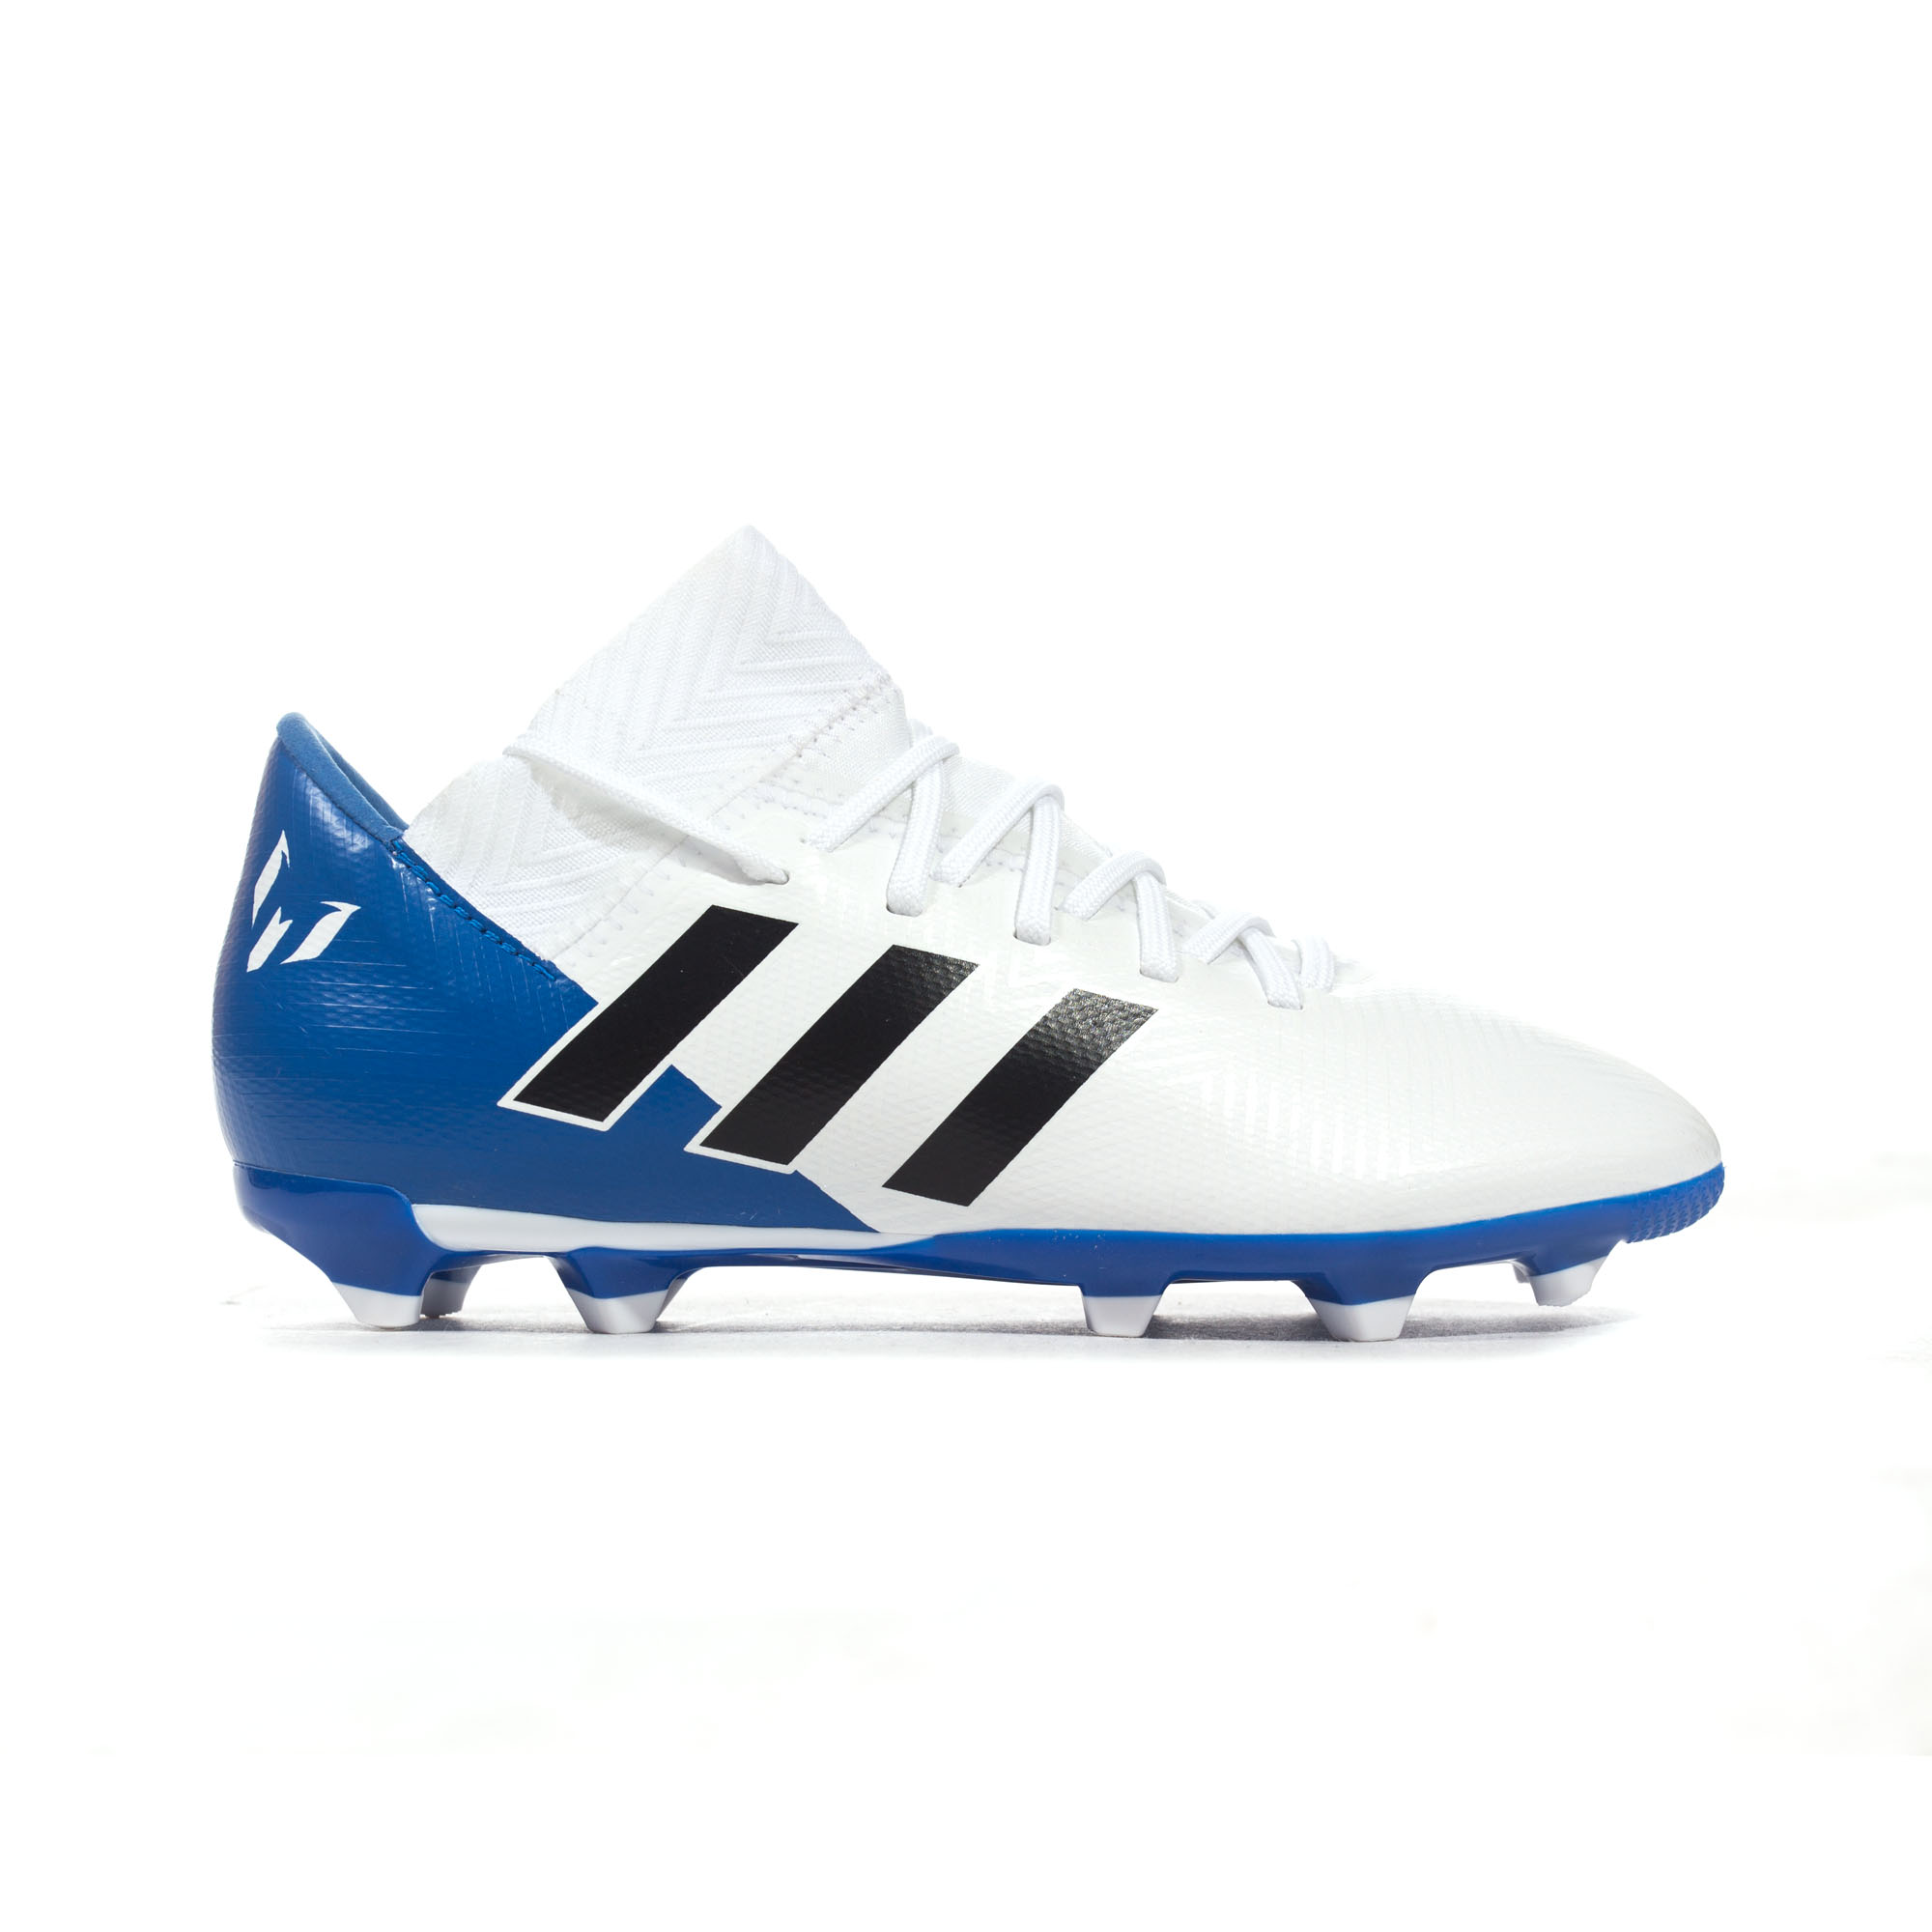 premium selection dff03 91d80 Details about adidas Nemeziz Messi 18.3 FG Firm Ground Kids Football Soccer  Boot Team Mode